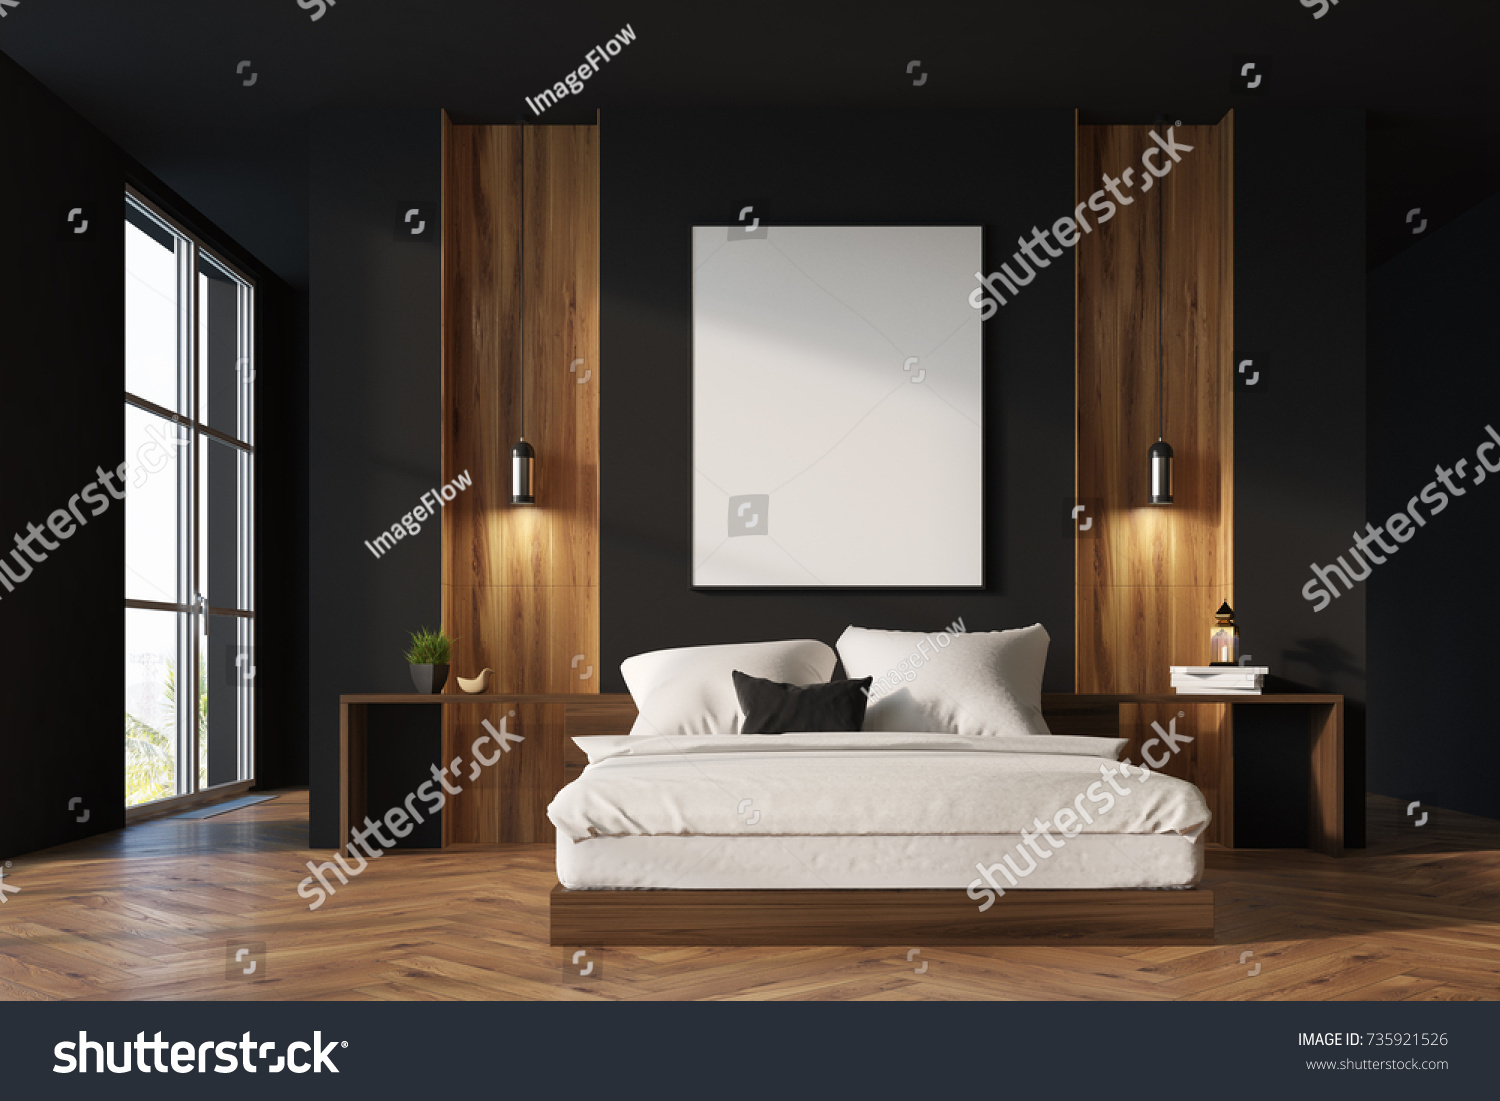 Royalty Free Stock Illustration of Luxury Bedroom Interior Black ...